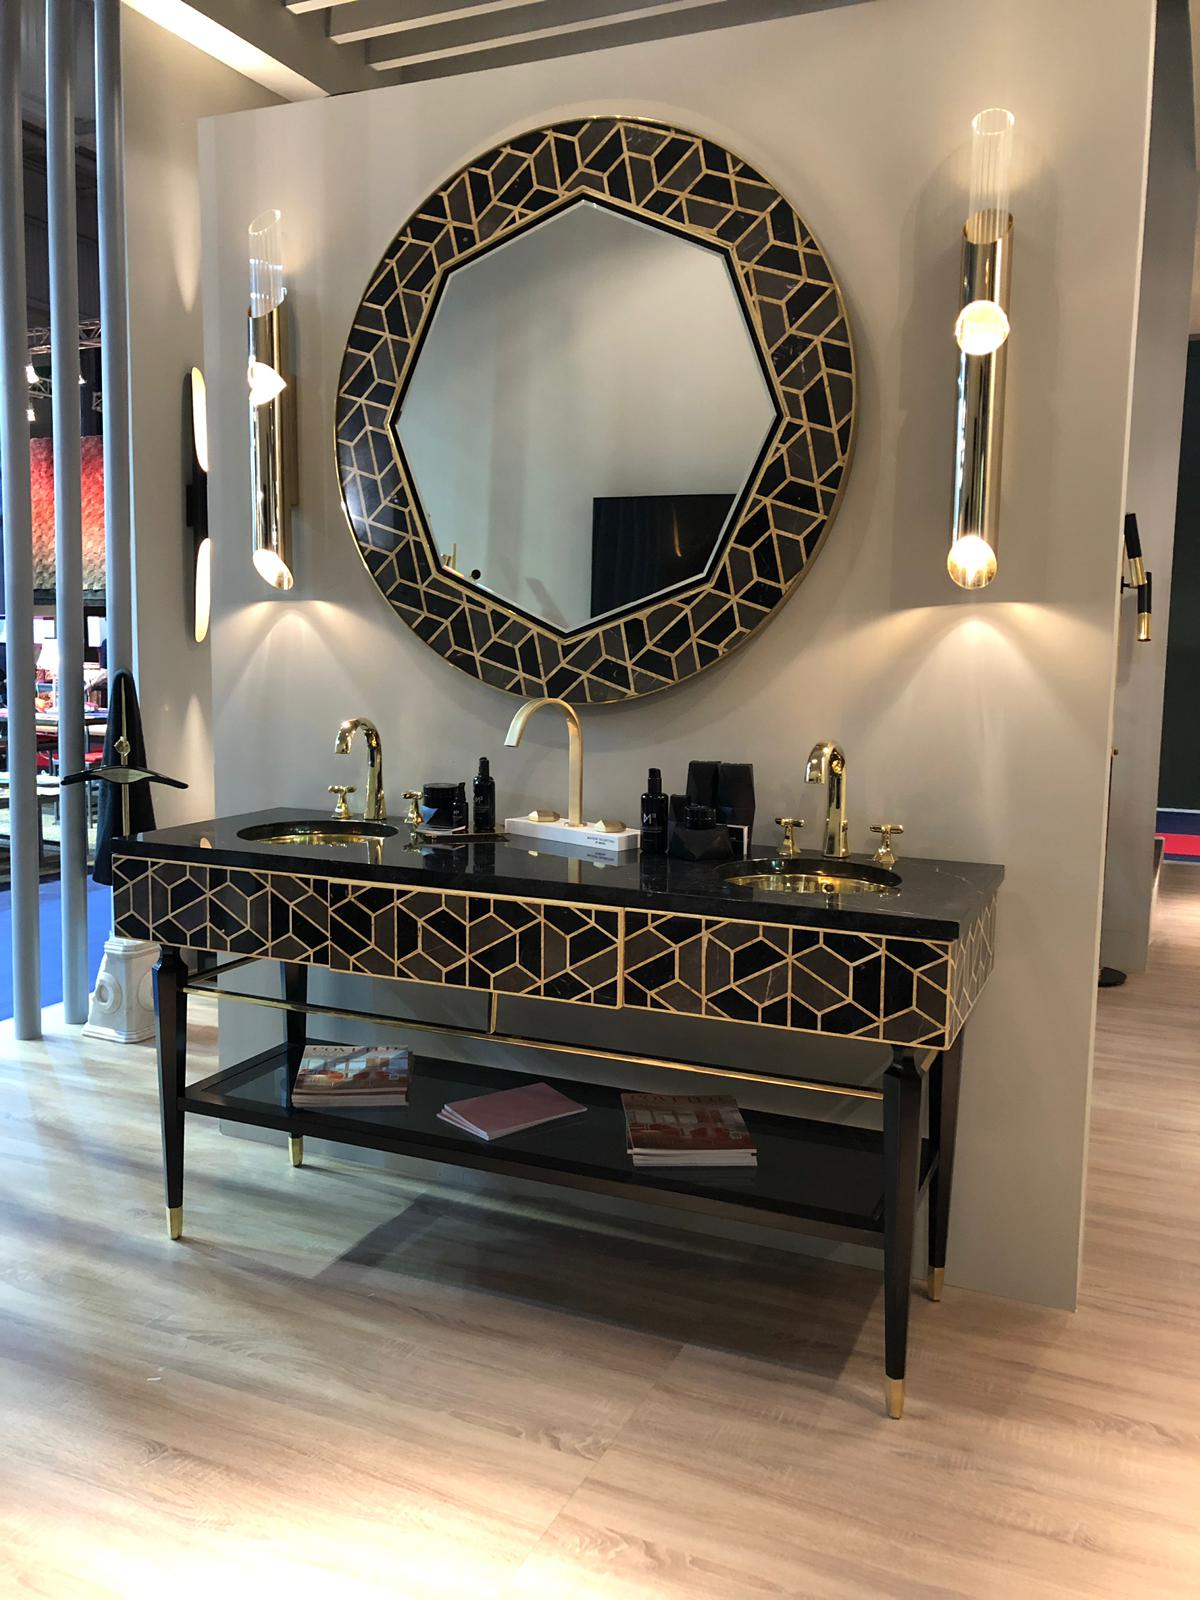 See Highlights from Maison Valentina's Stand at Maison et Objet 2019 (6) maison et objet See Highlights from Maison Valentina's Stand at Maison et Objet 2019 See Highlights from Maison Valentinas Stand at Maison et Objet 2019 6